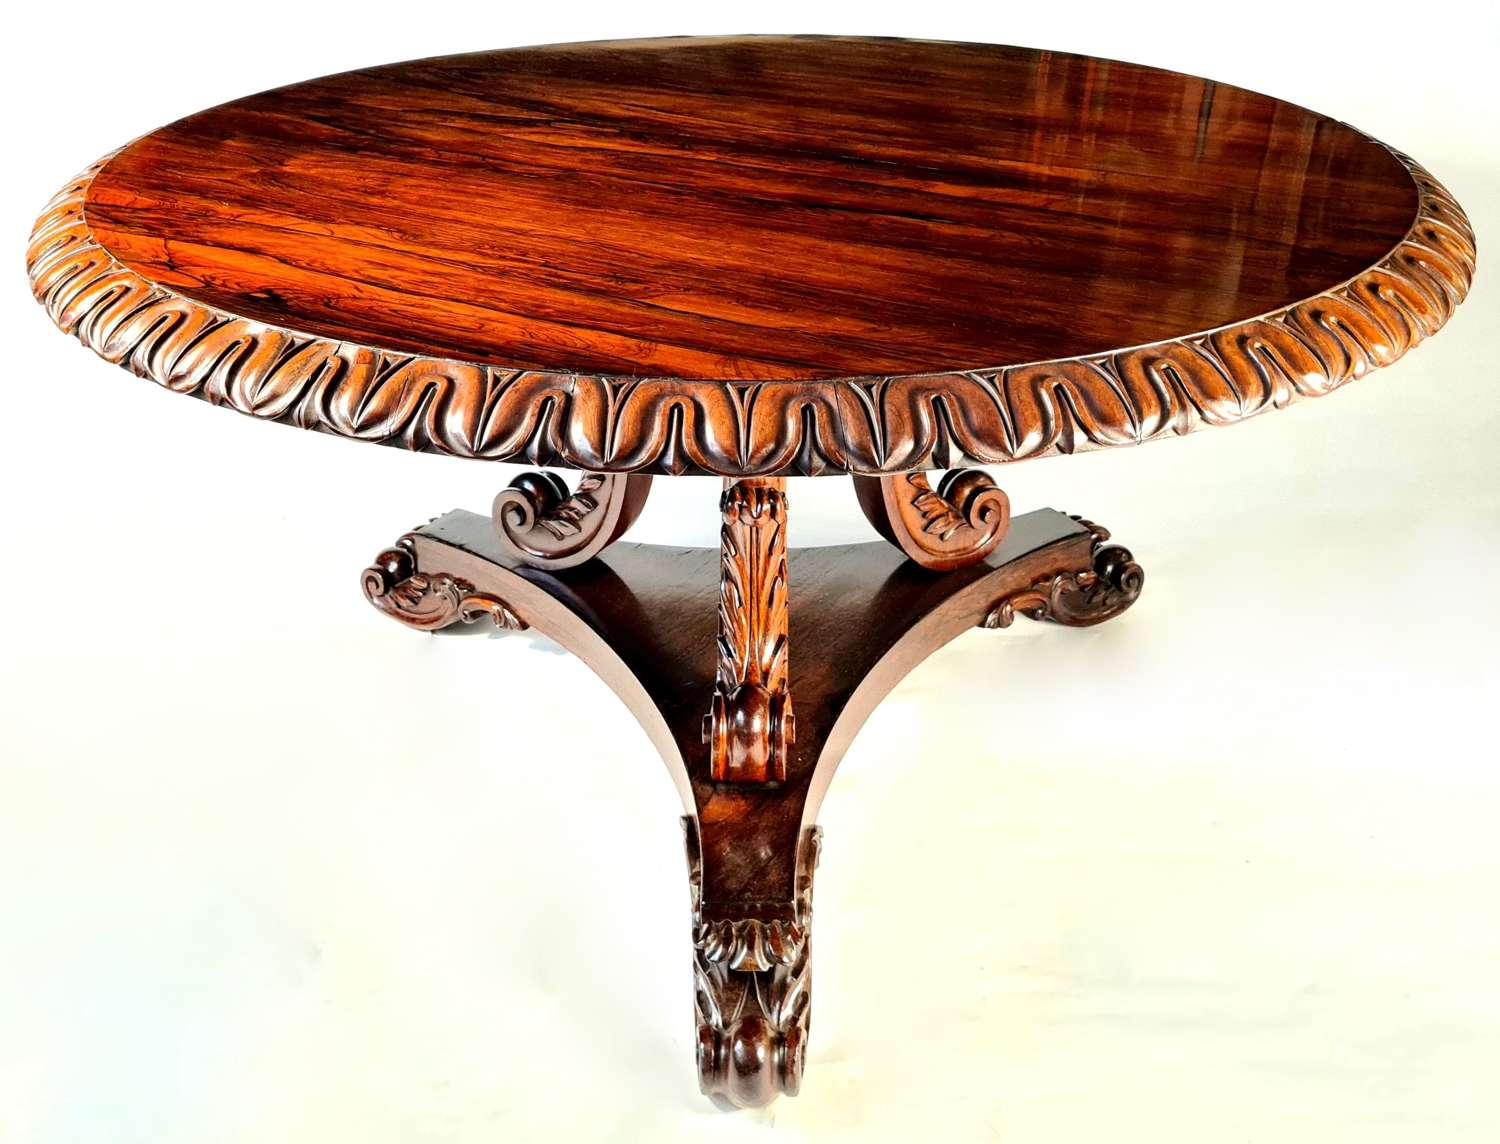 A Magnificent Regency Rosewood Circular Table